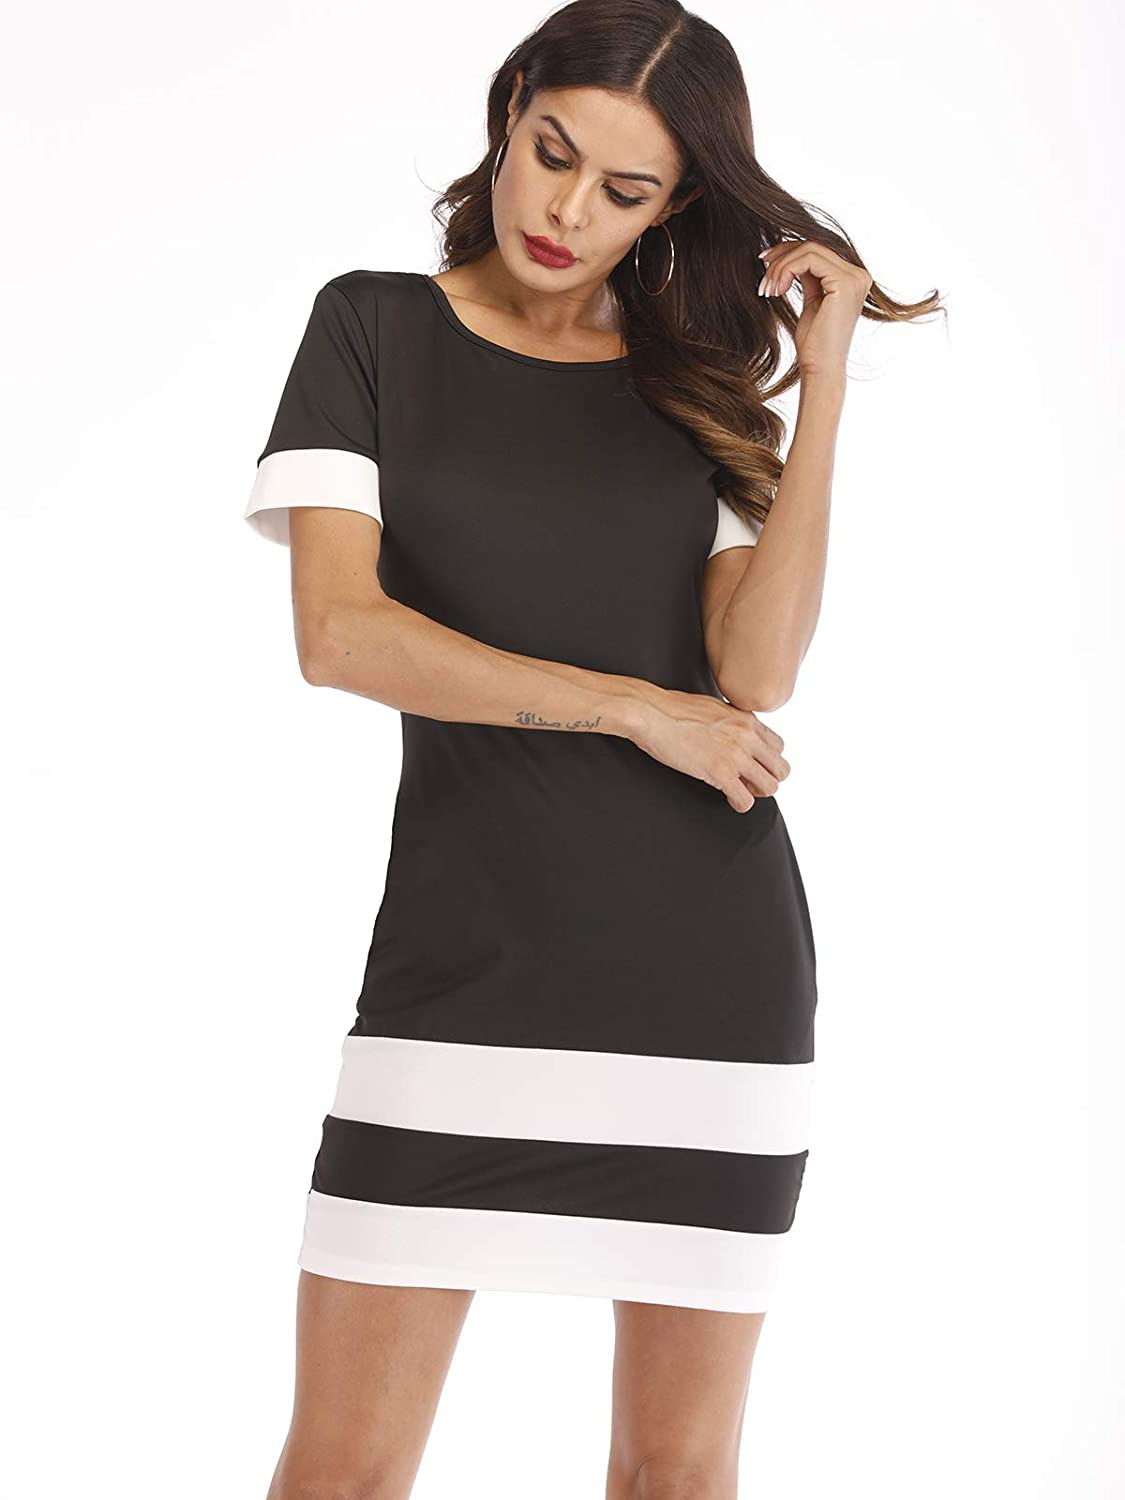 8d51e2c64acc Women s Casual Plain Short Sleeve Elastic Waist Simple T-Shirt Dress  Bodycon Midi Dress with Pocket at Amazon Women s Clothing store